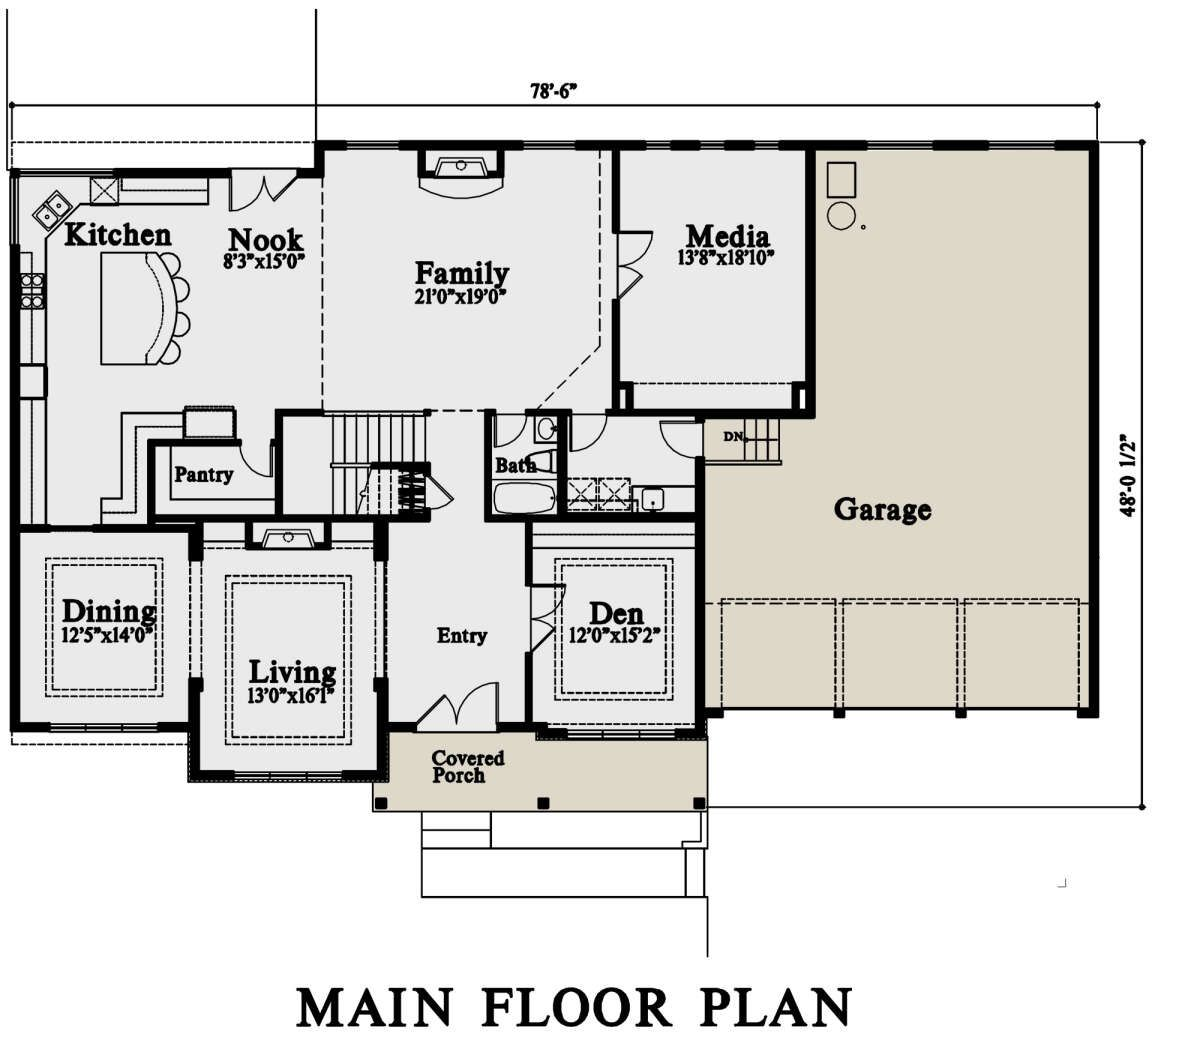 House Plan 4771 00015 Mid Century Modern Plan 4 976 Square Feet 5 Bedrooms 6 Bathrooms In 2020 House Plans House Plan With Loft Floor Plans